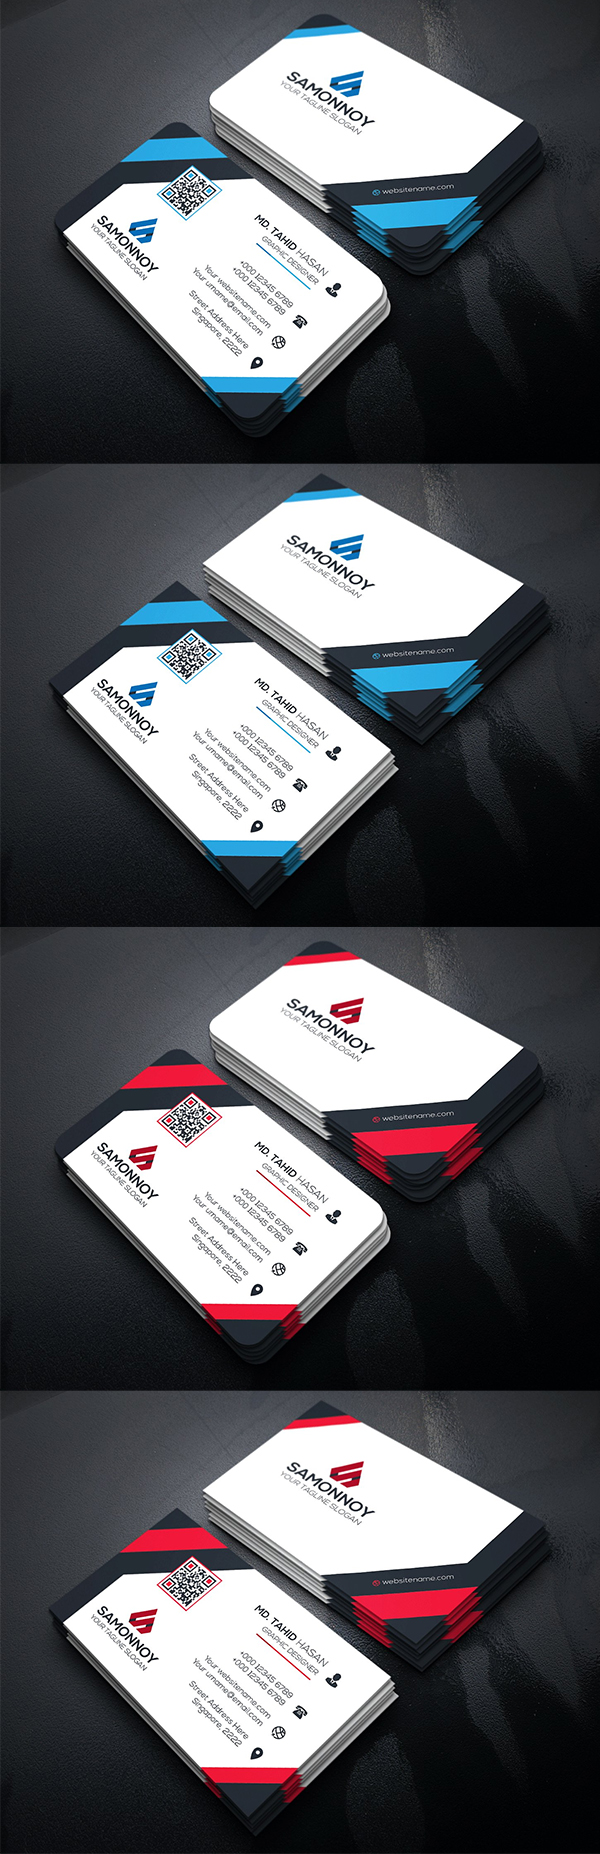 Clean & Simple Business Cards Template